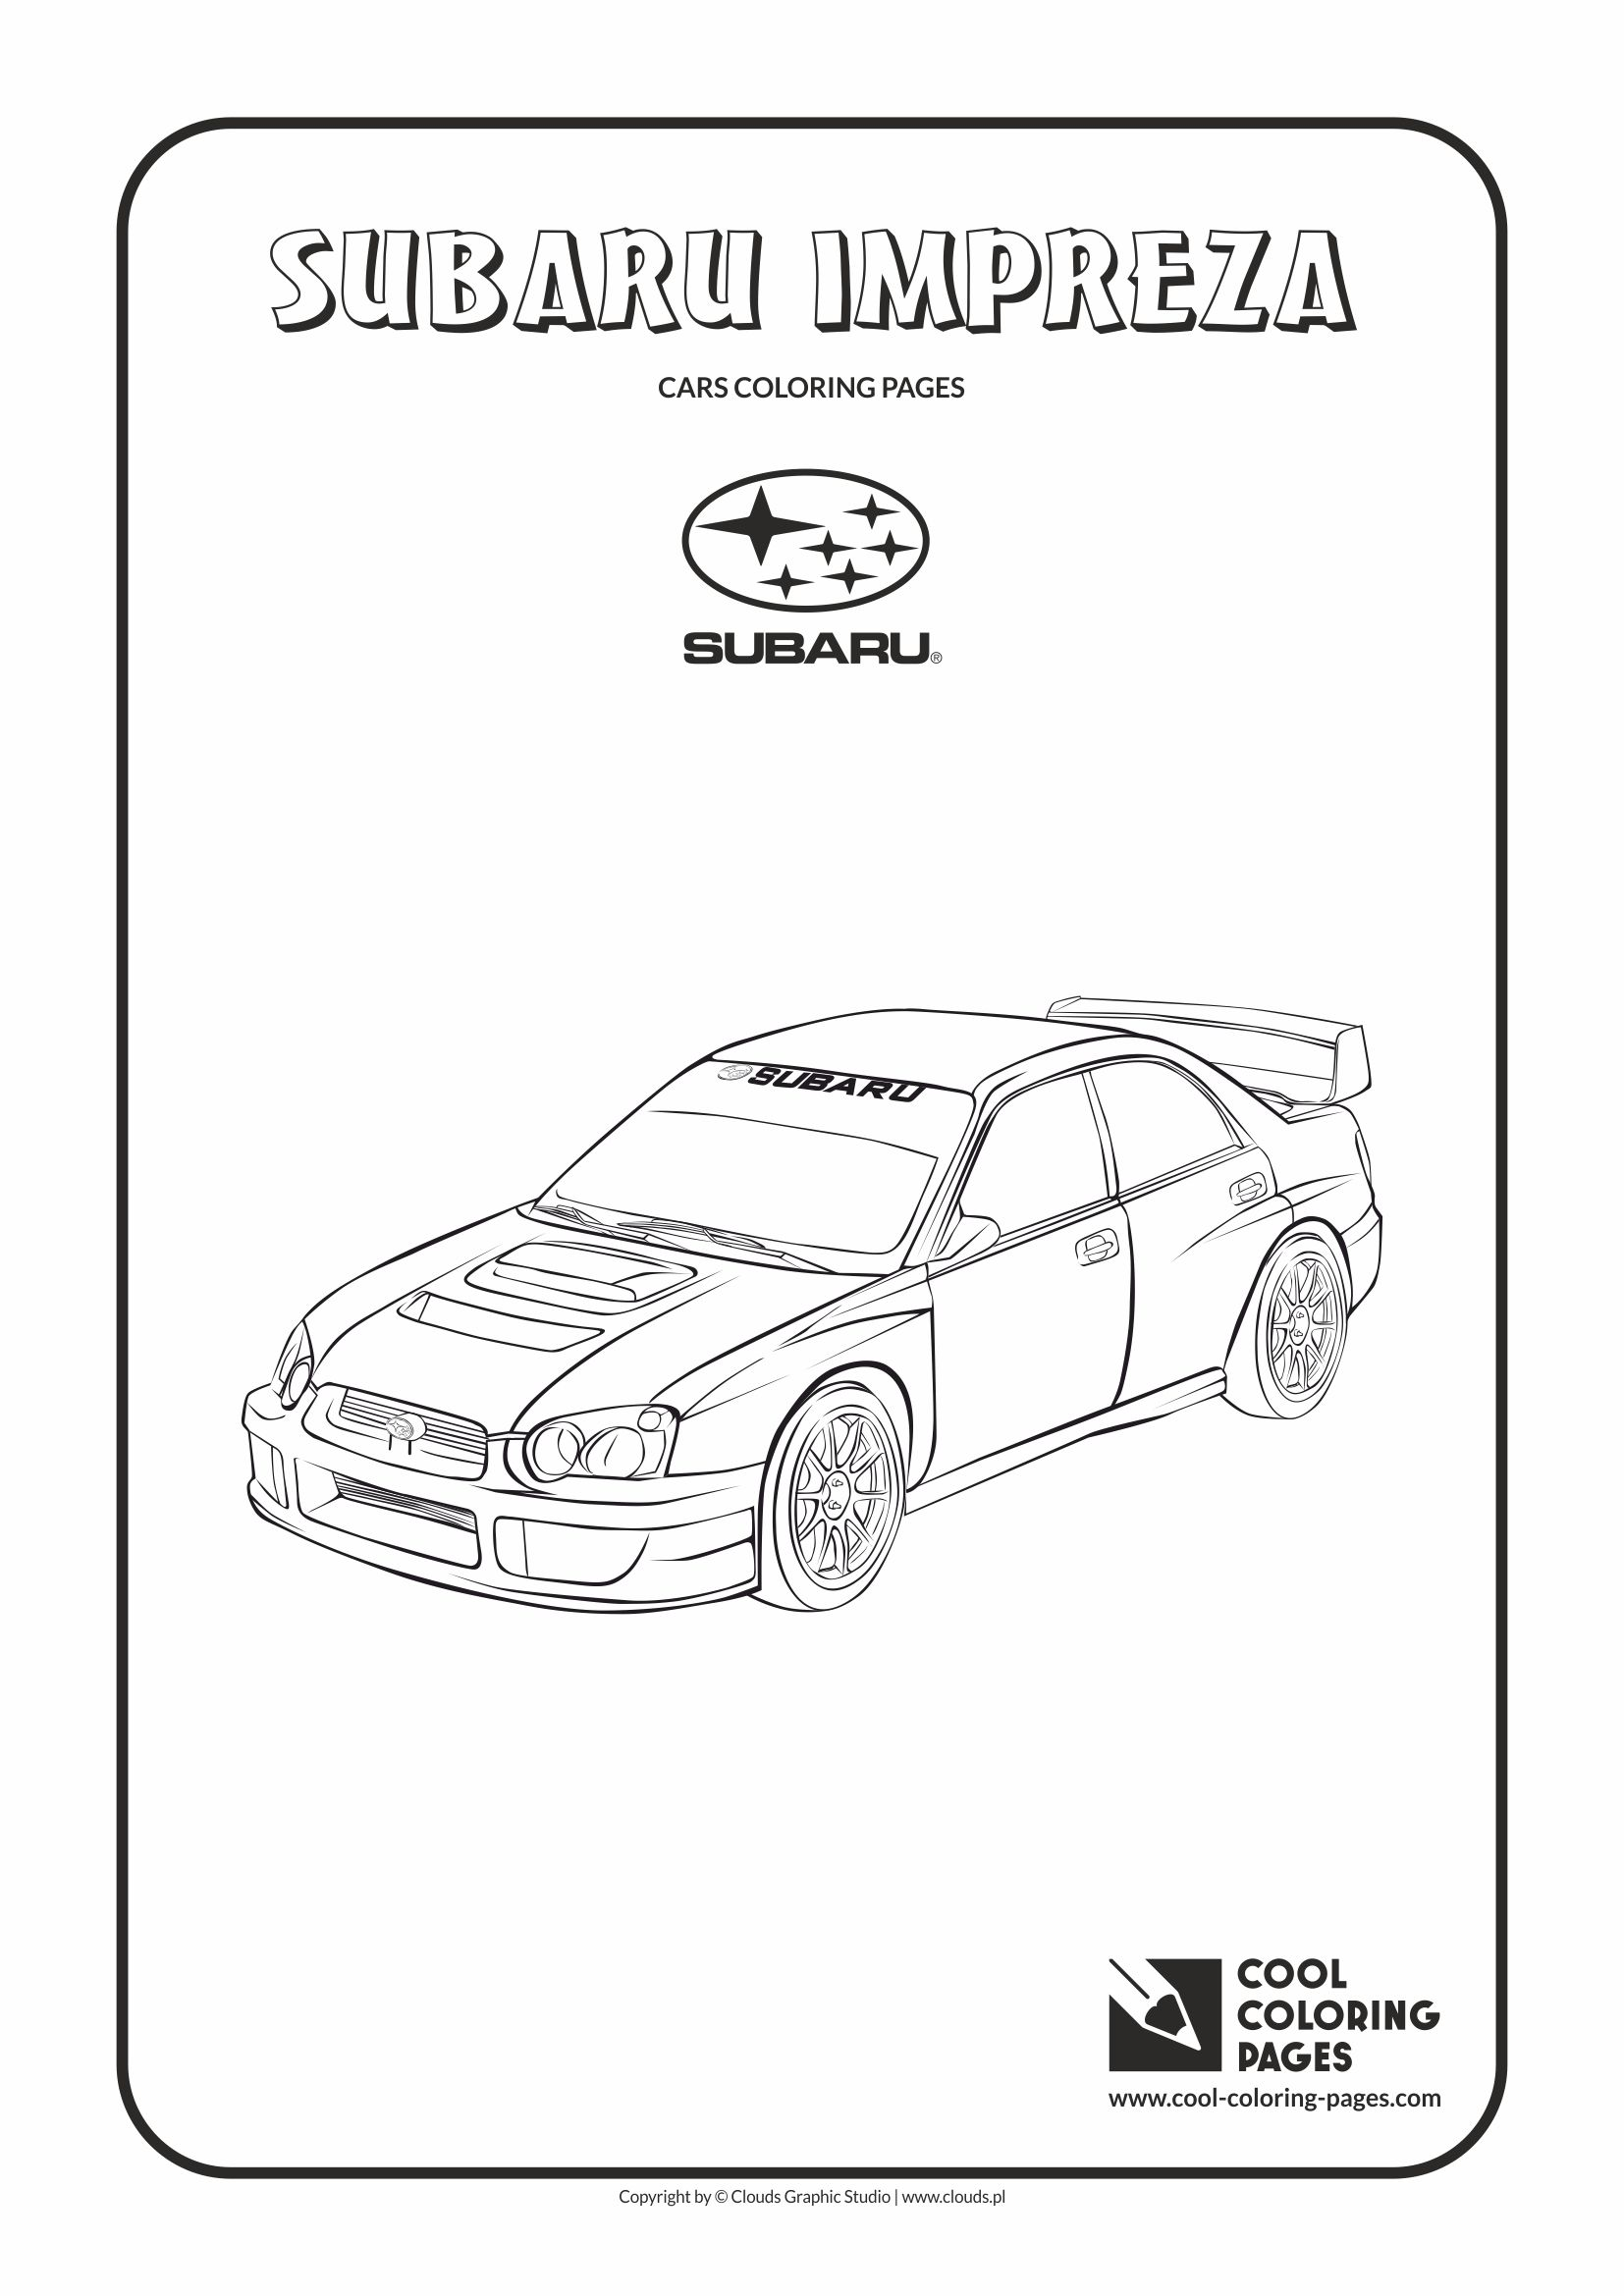 Cool Coloring Pages - Vehicles / Subaru Impreza / Coloring page with Subaru Impreza